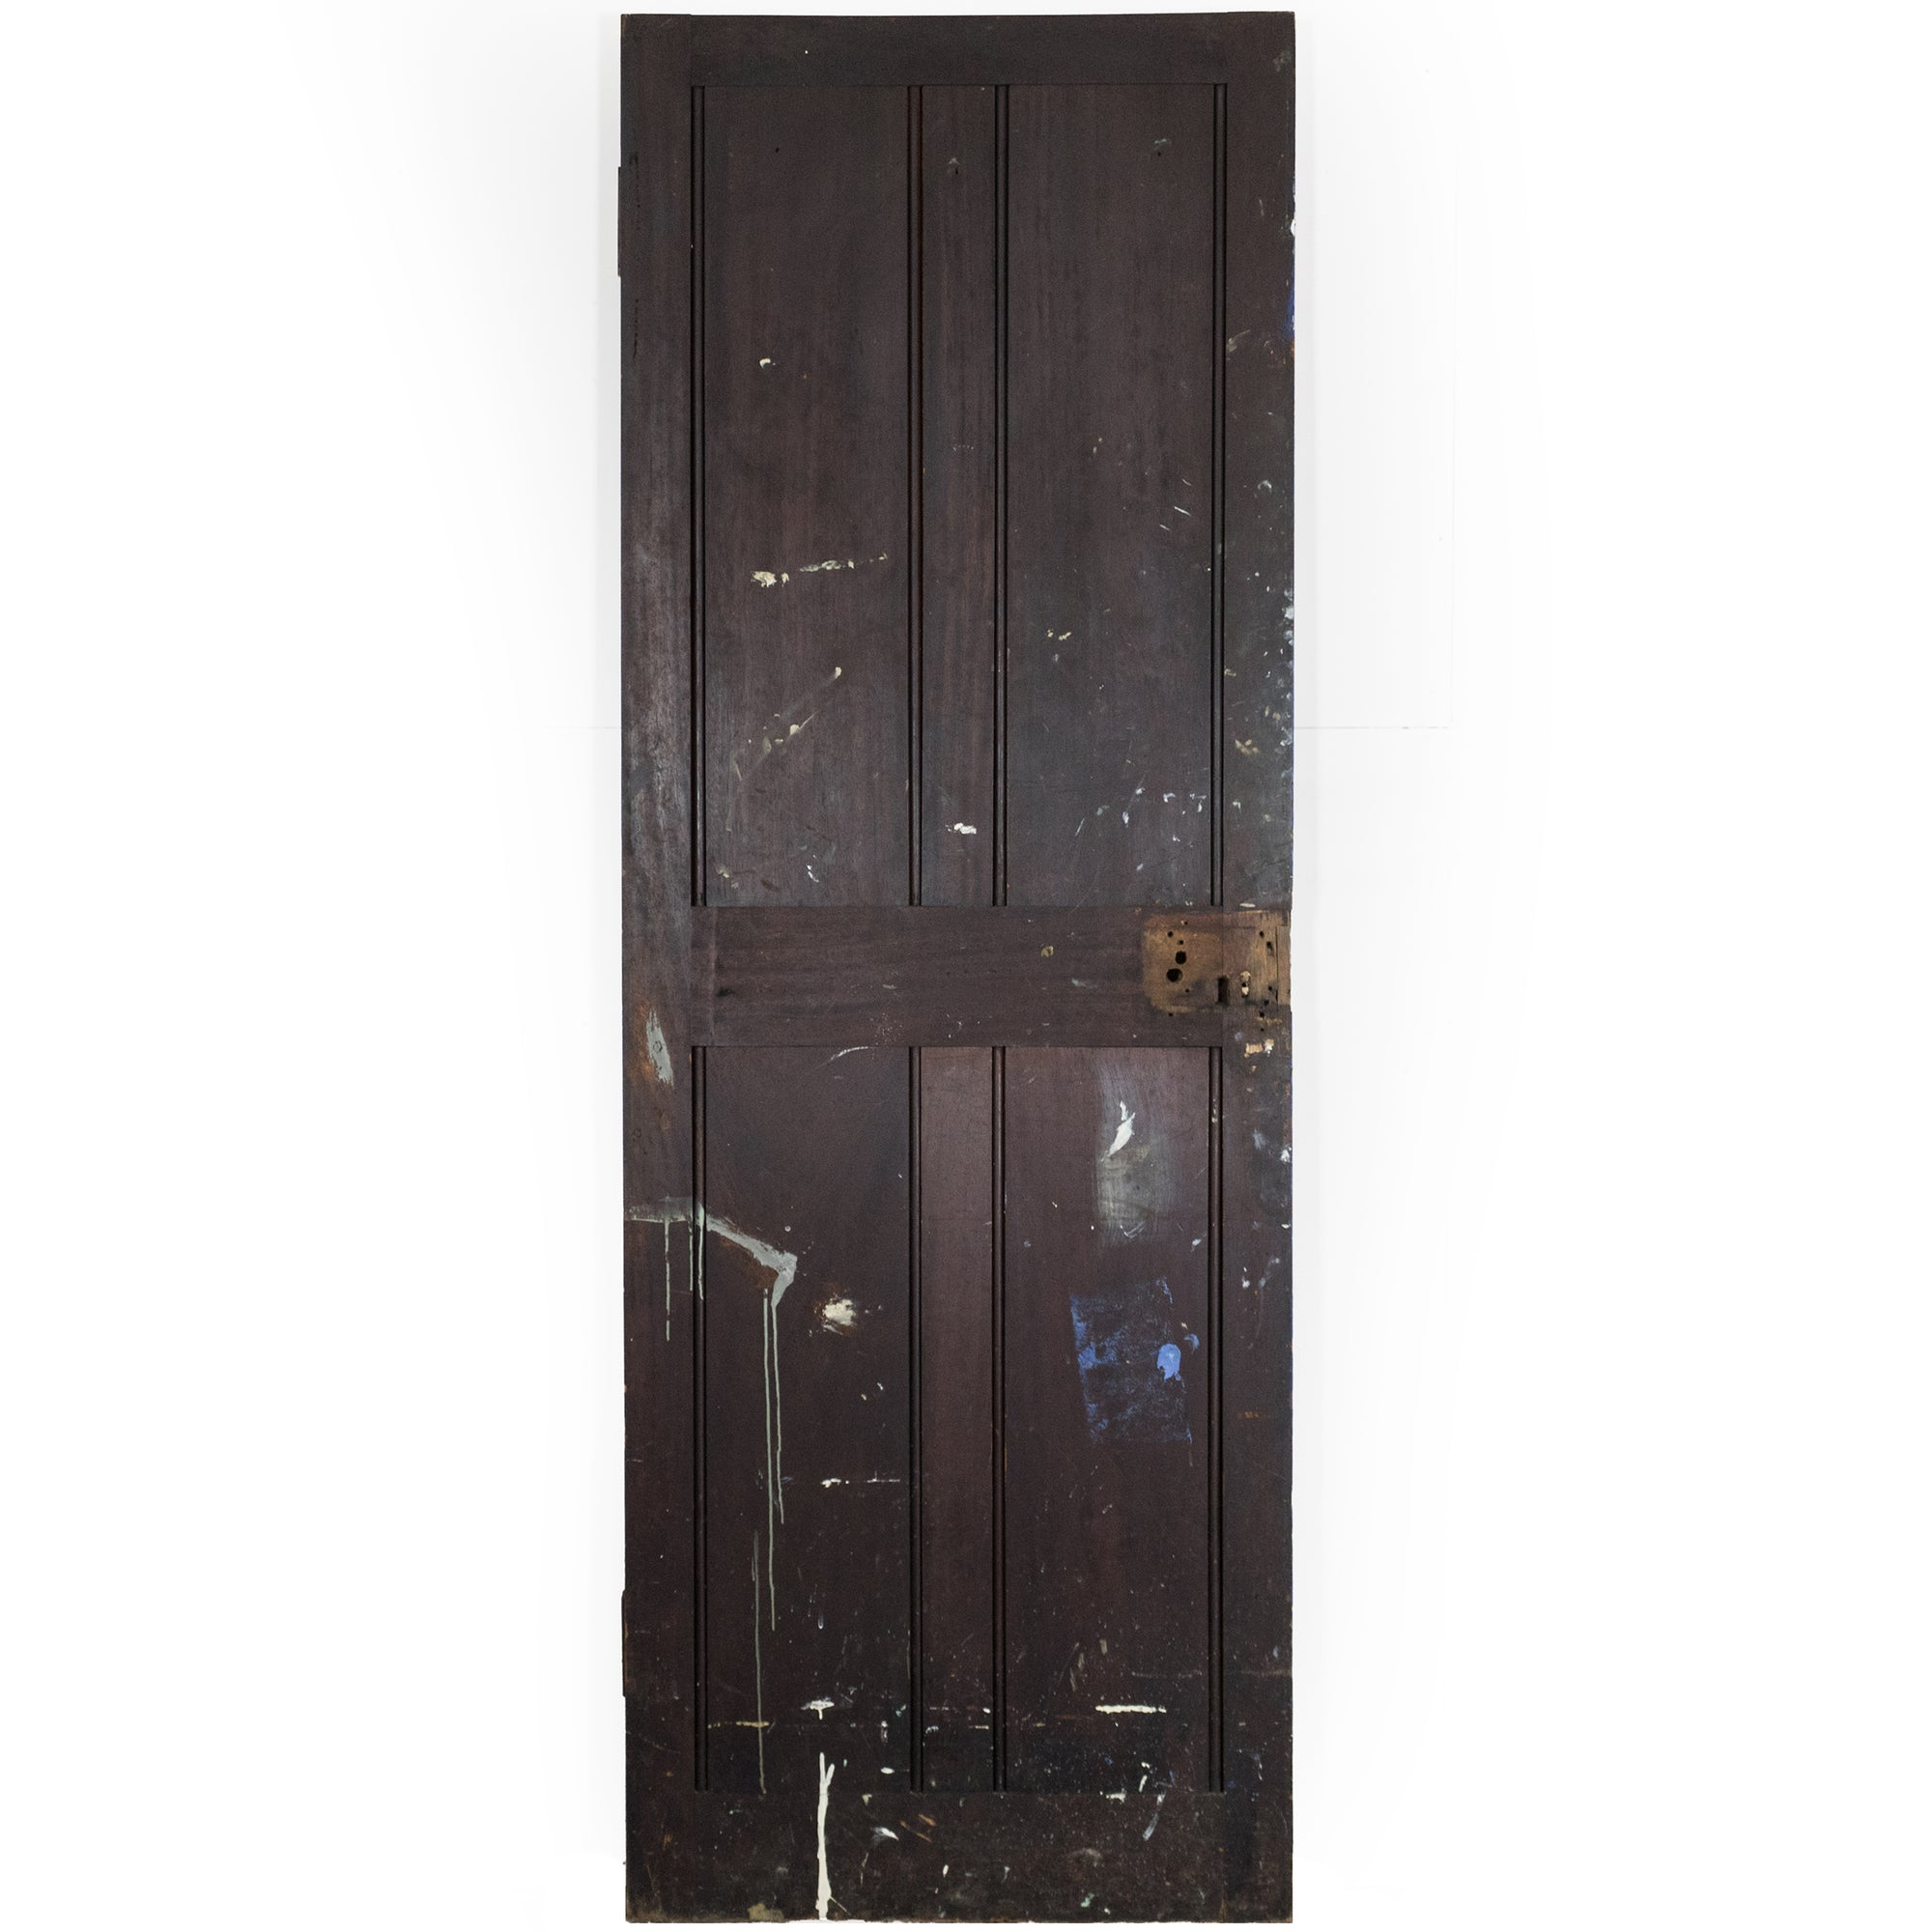 Antique Reclaimed Teak Four Panel Door - 194cm x 68.5cm x 3.5cm